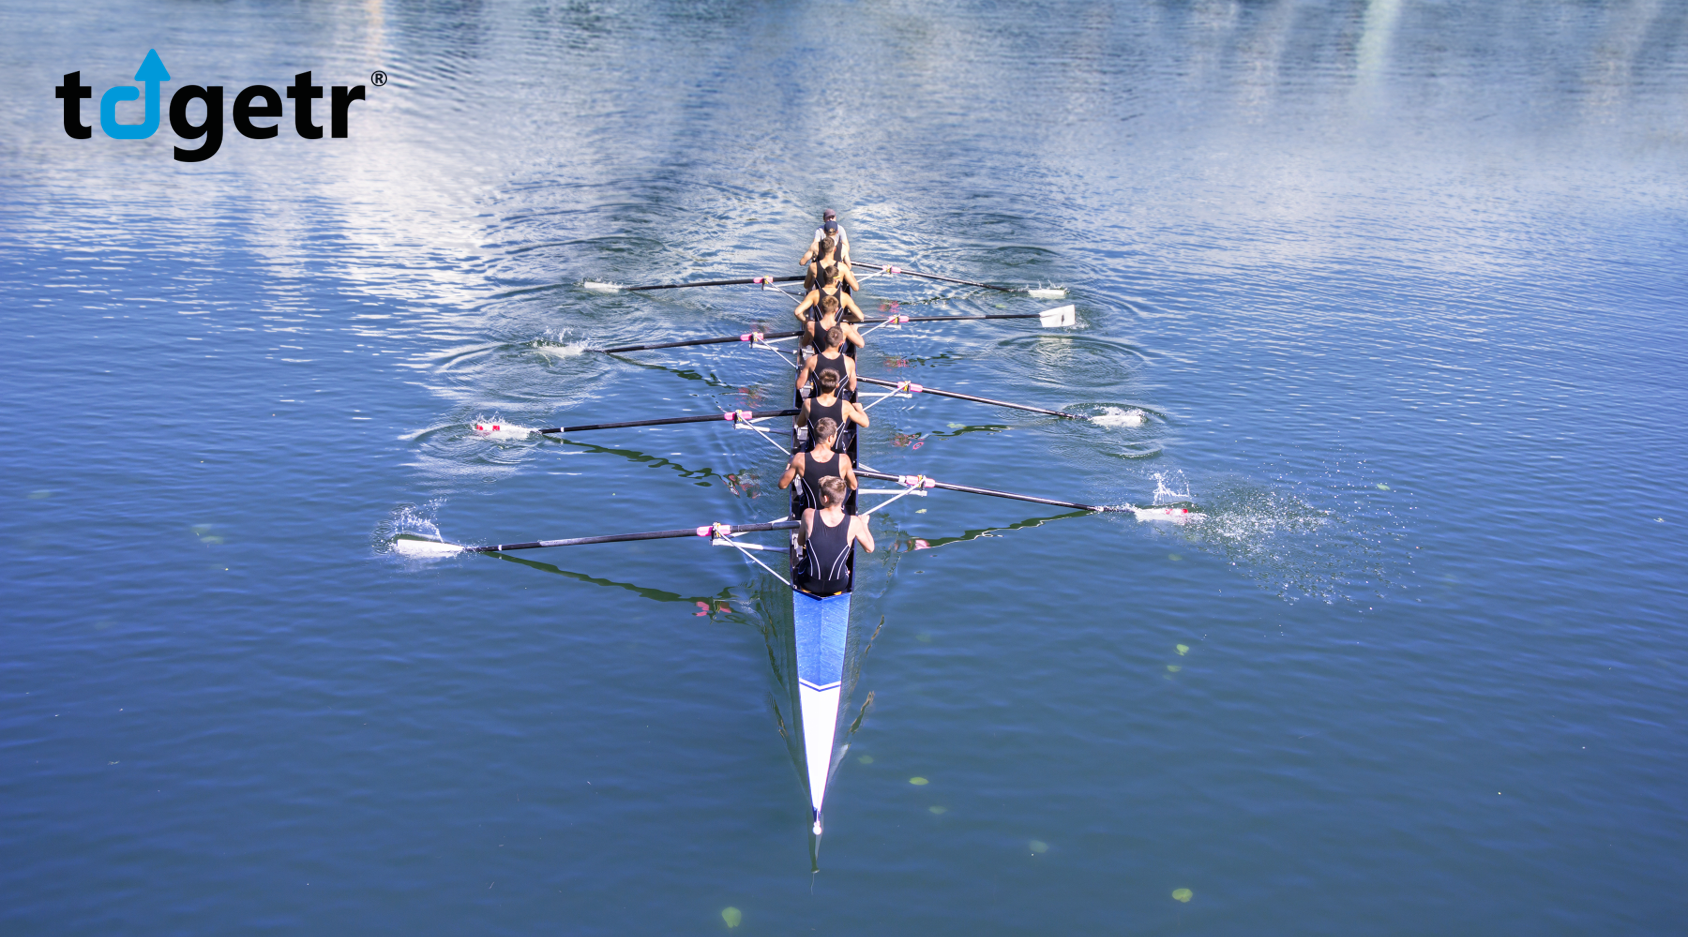 Rowing Togetr